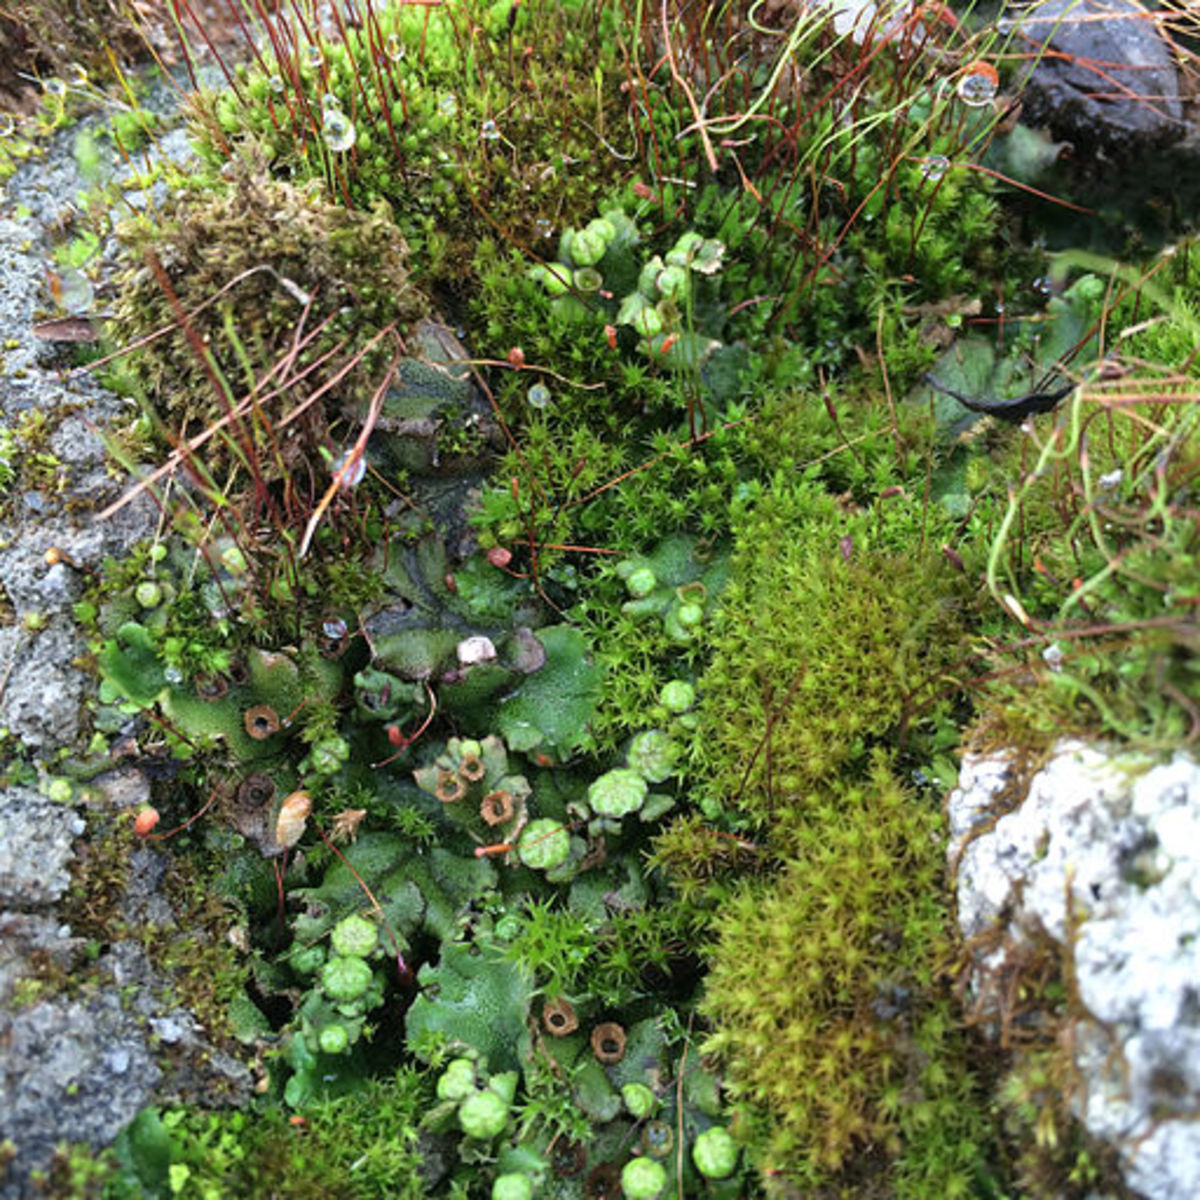 Bryophytes are types of plants. A growth of various bryophytes (here liverworts and leafy mosses).